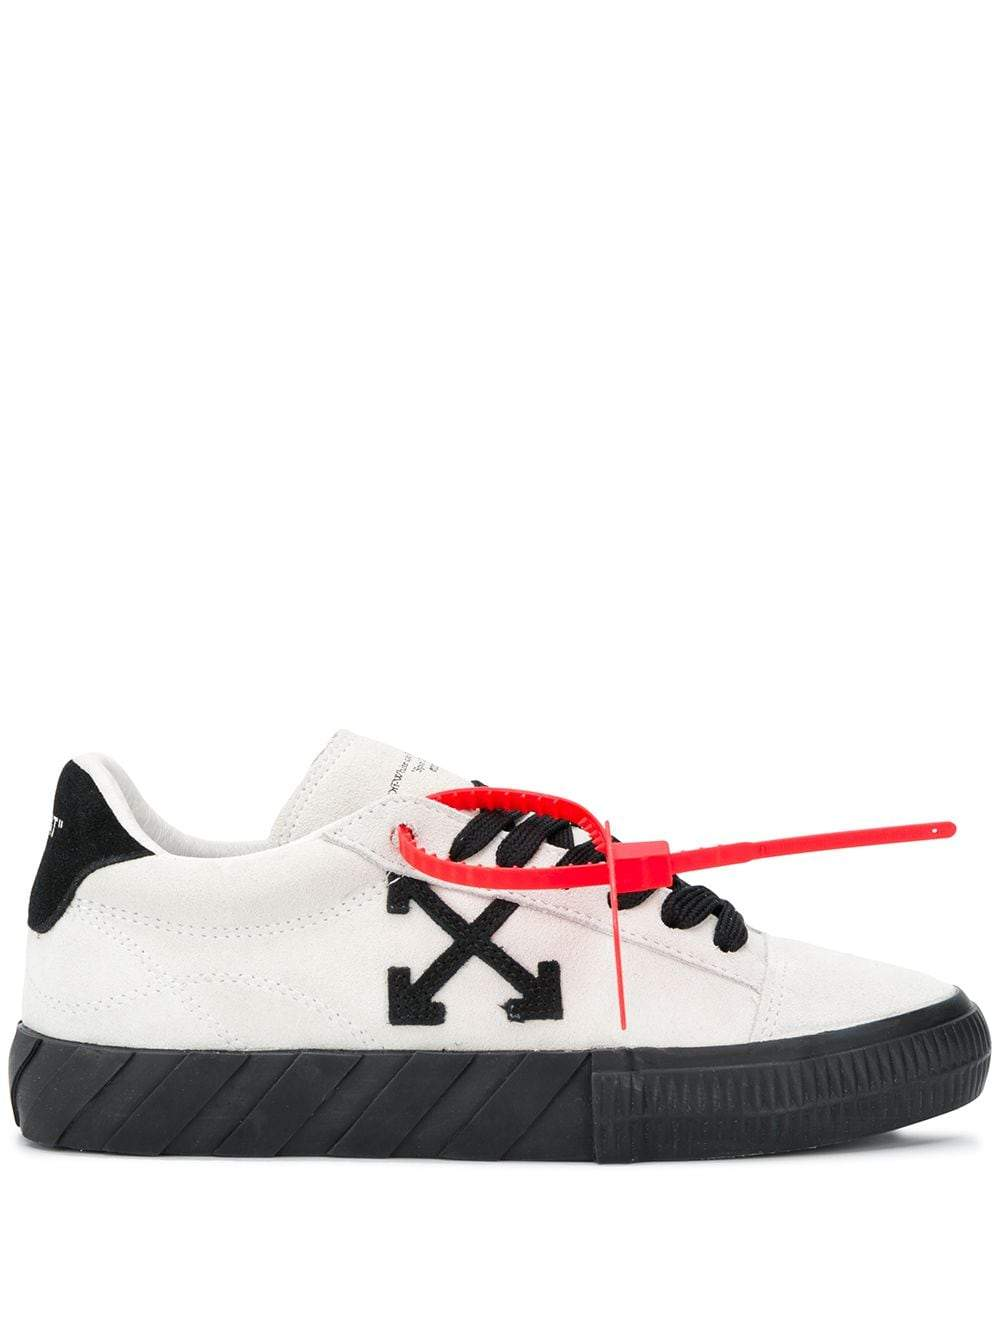 OFF-WHITE Women New Arrow Low Vulcanized Sneakers White - Maison De Fashion